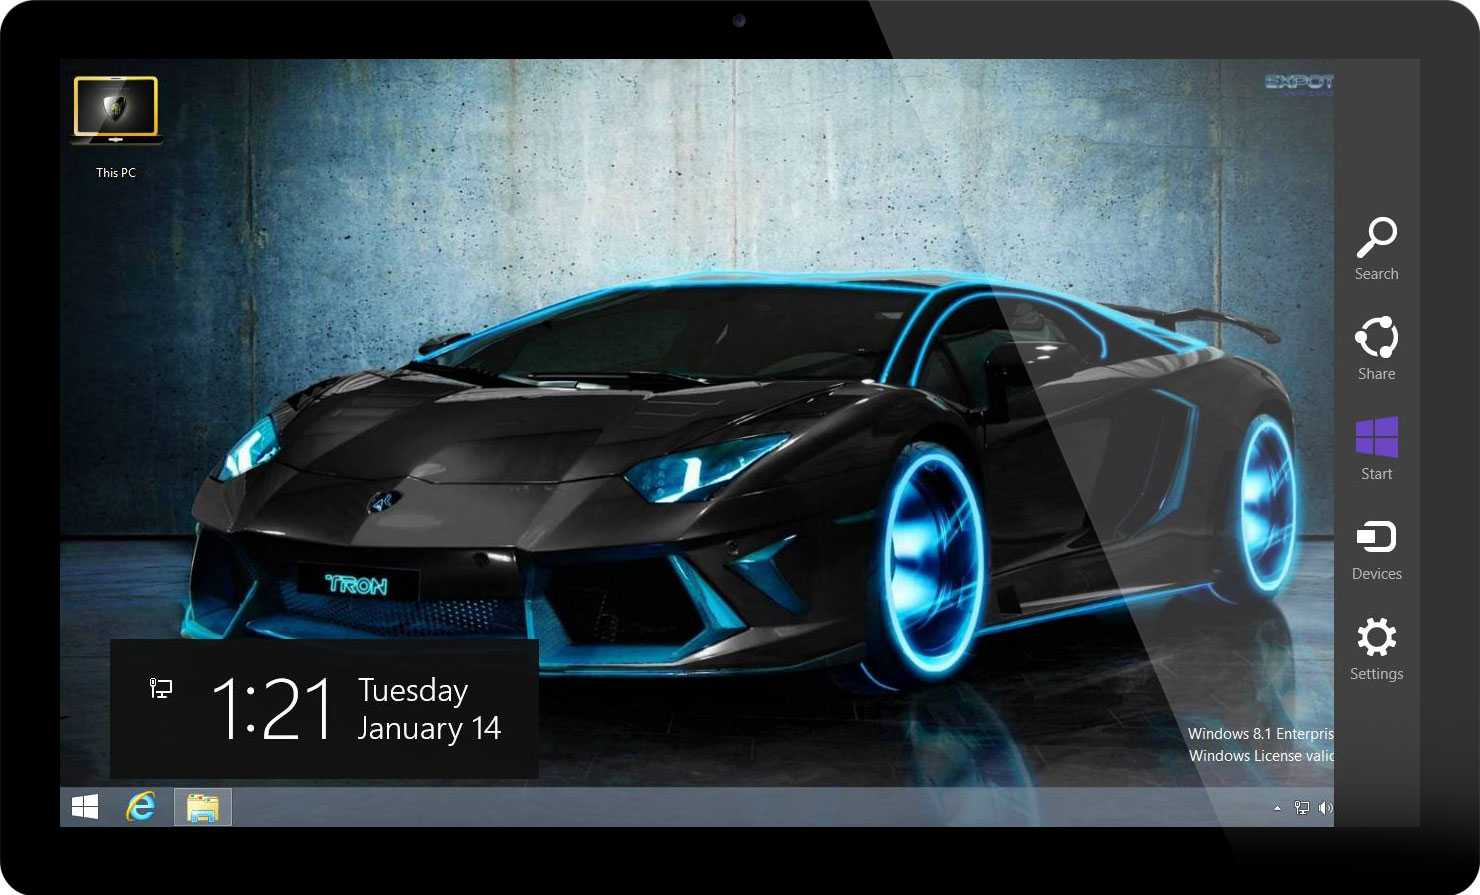 ... windows 7 and windows 8 and has 35 hd car wallpapers and logon screens